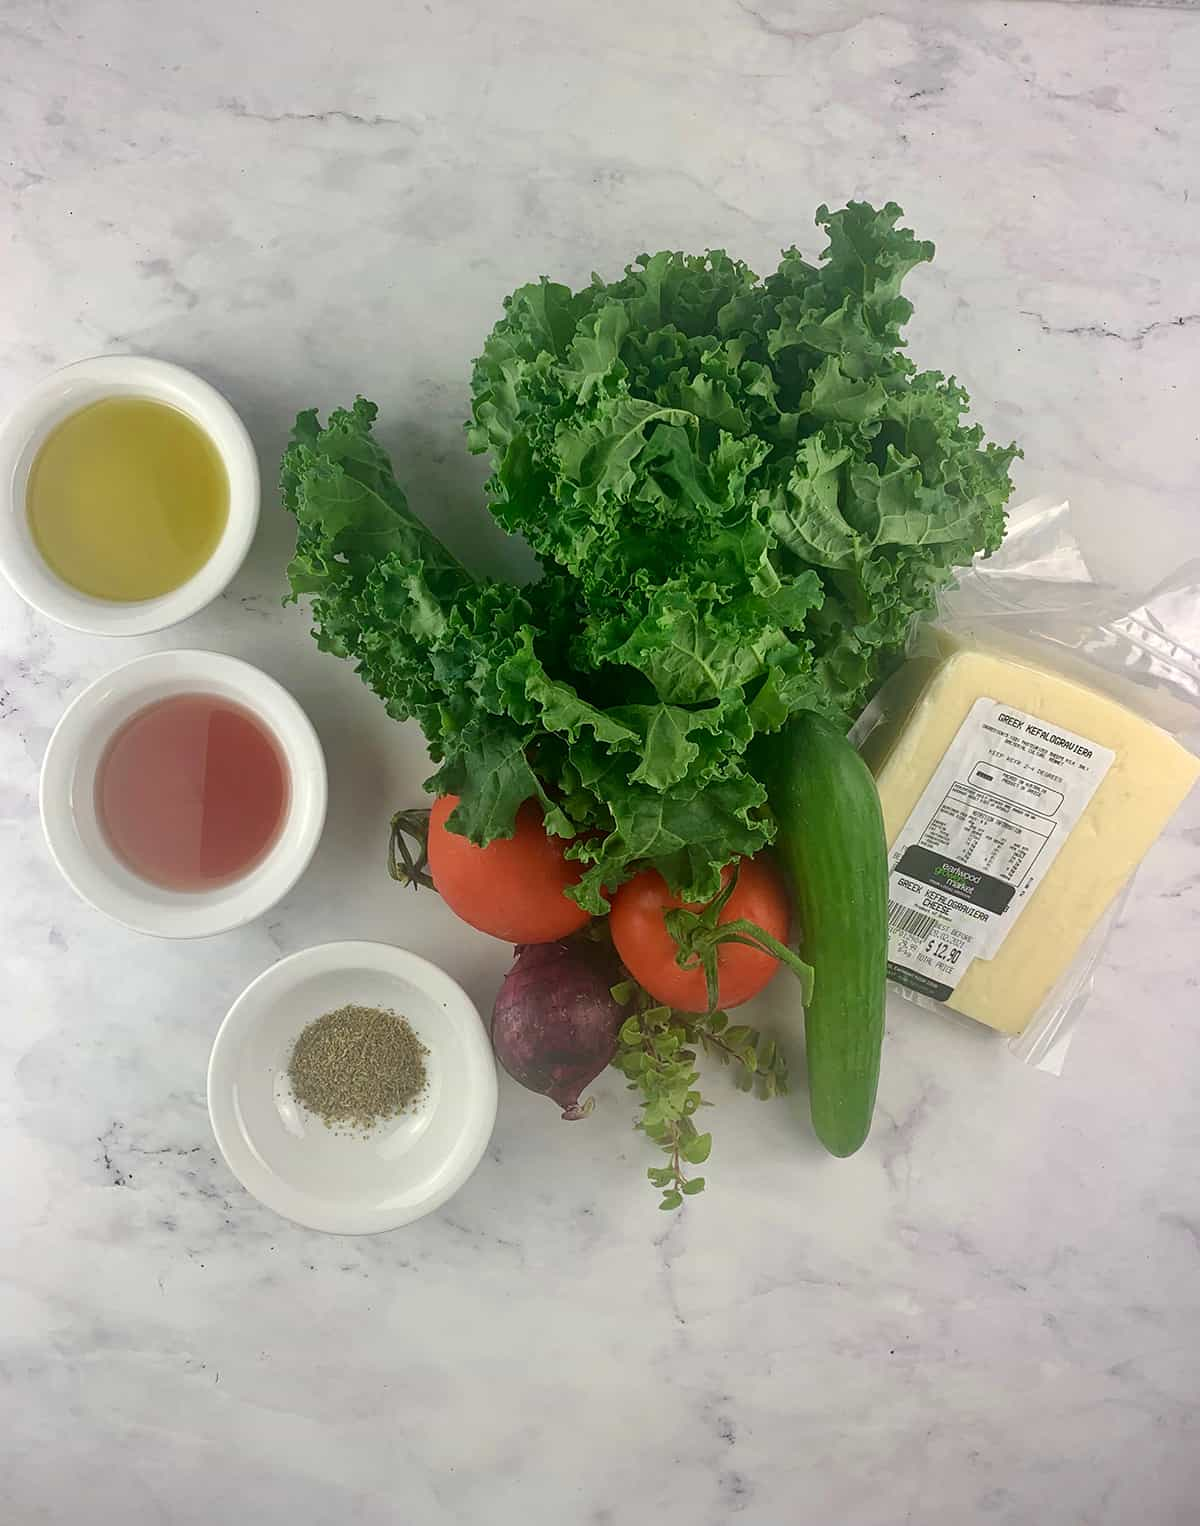 INGREDIENTS FOR CHOPPED KALE SALAD IN PORTRAIT